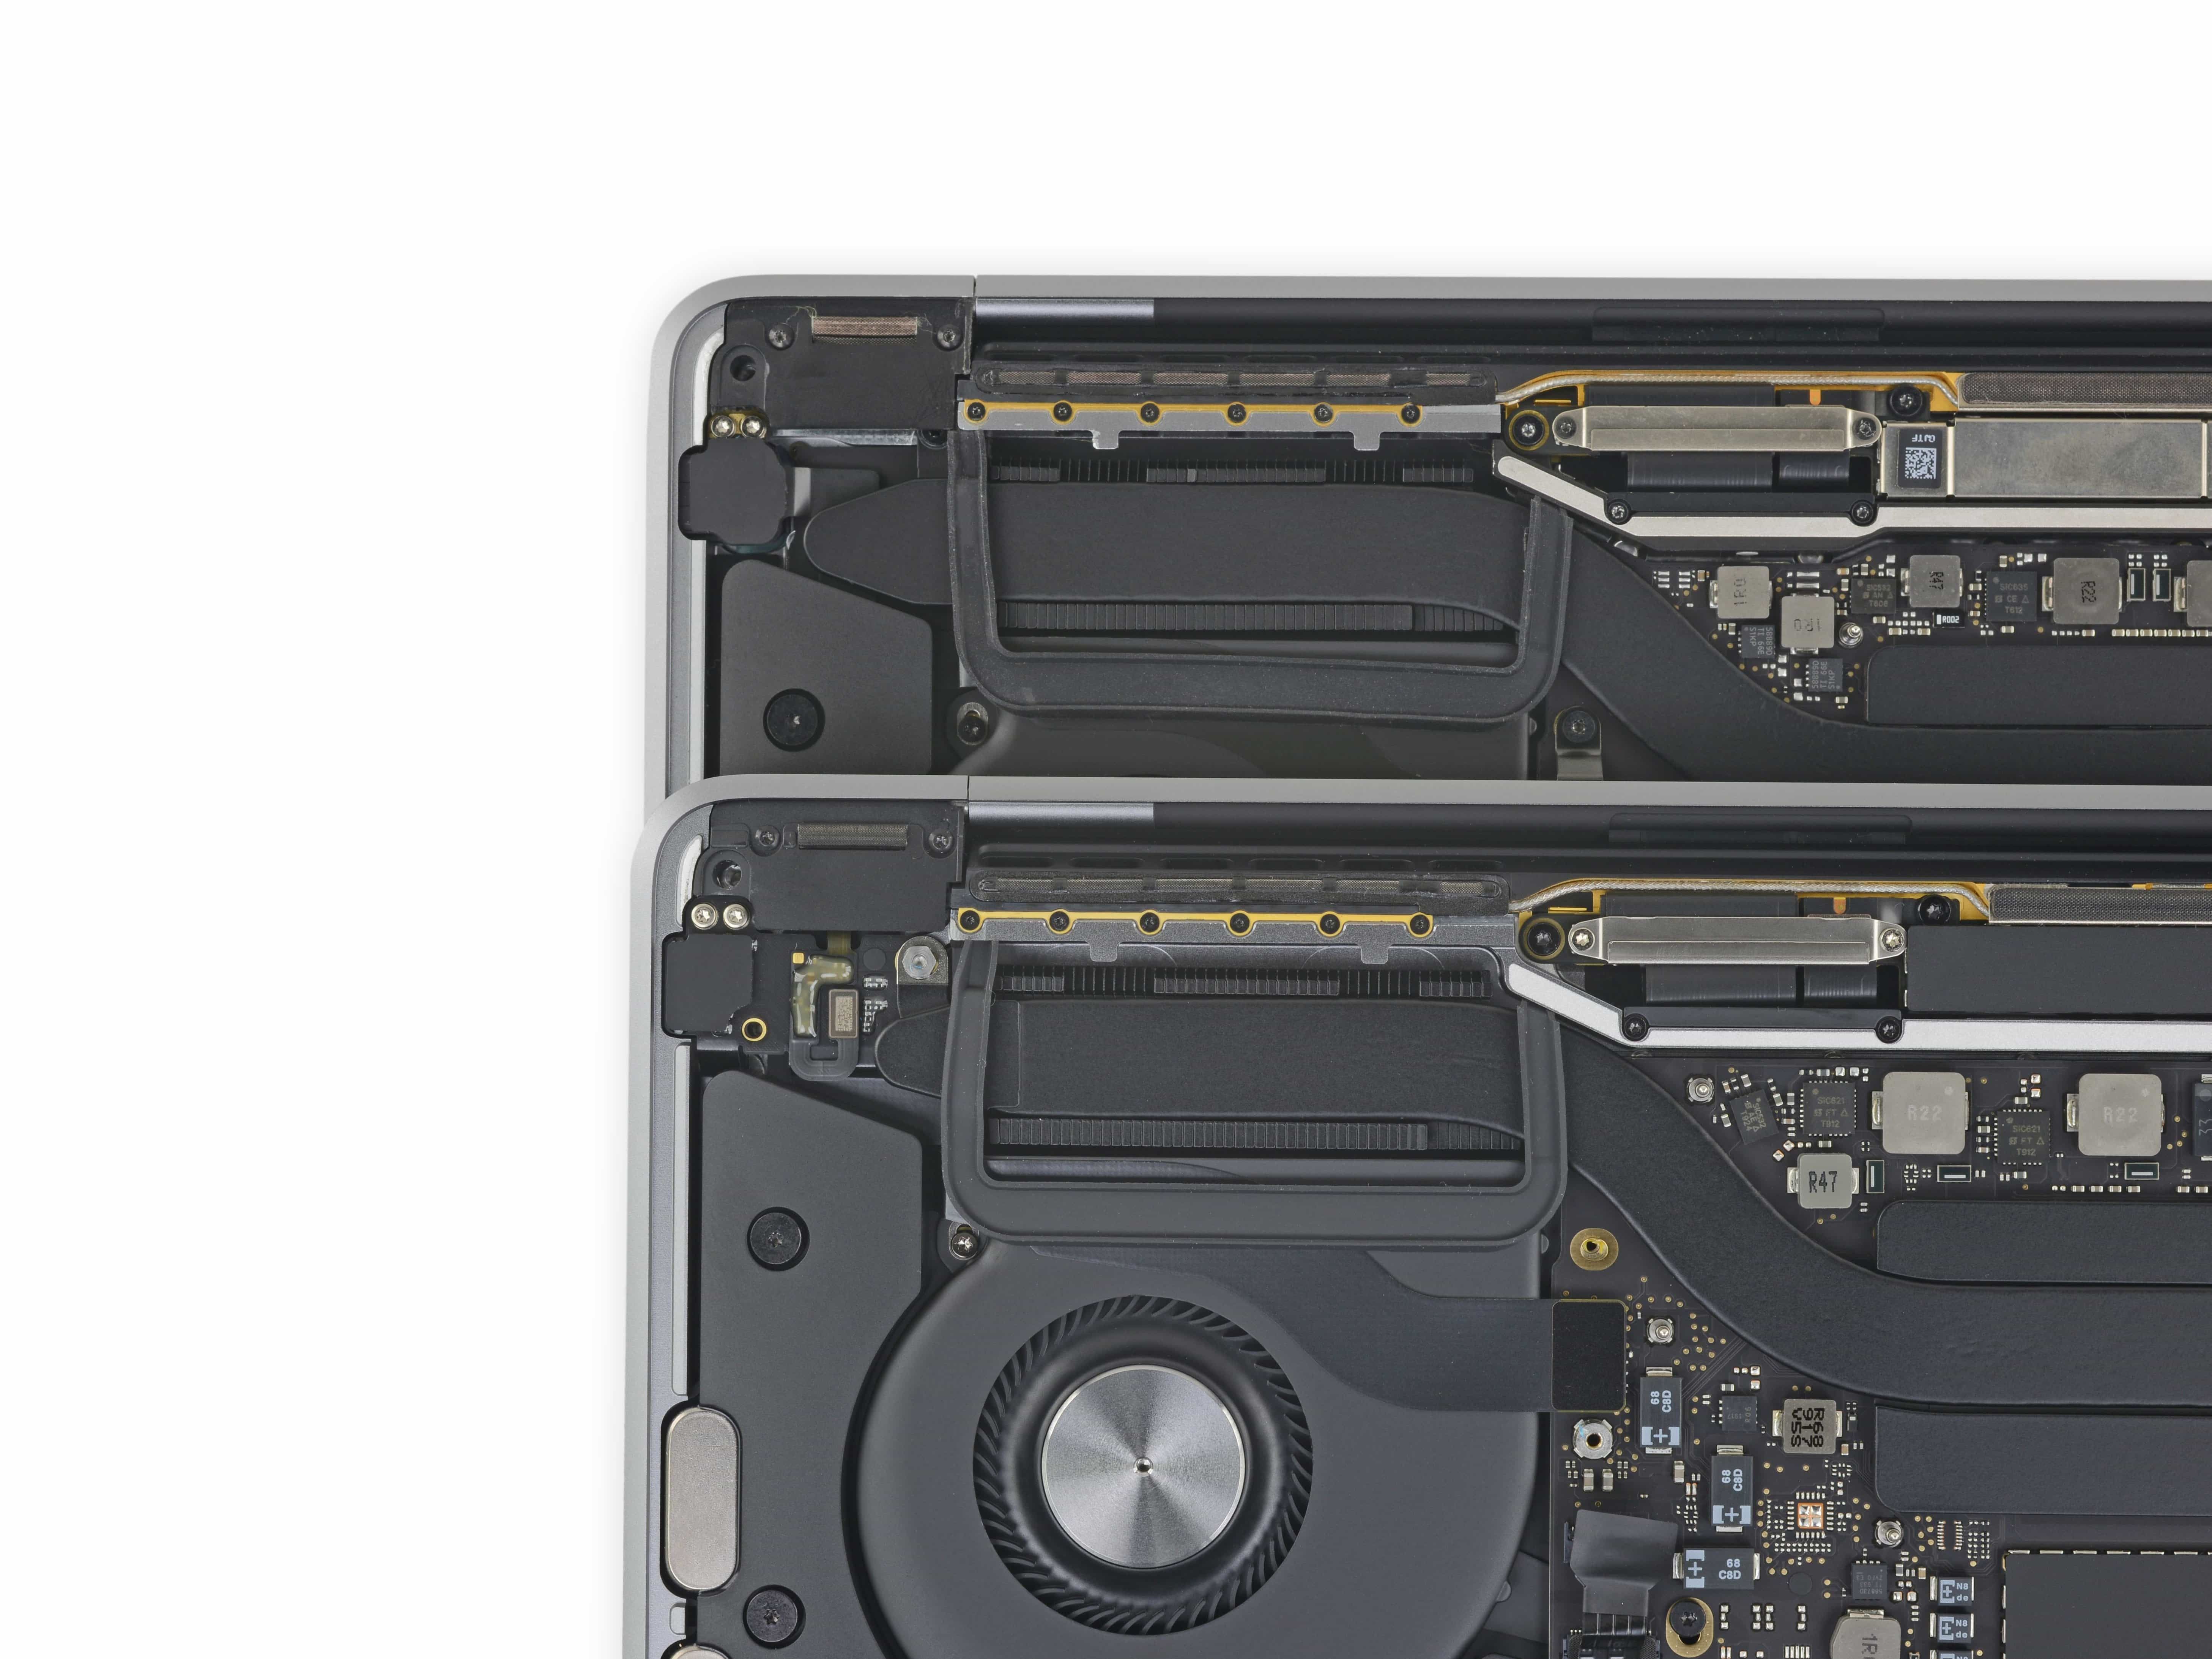 2019-MacBook-Pro-13-teardown-3